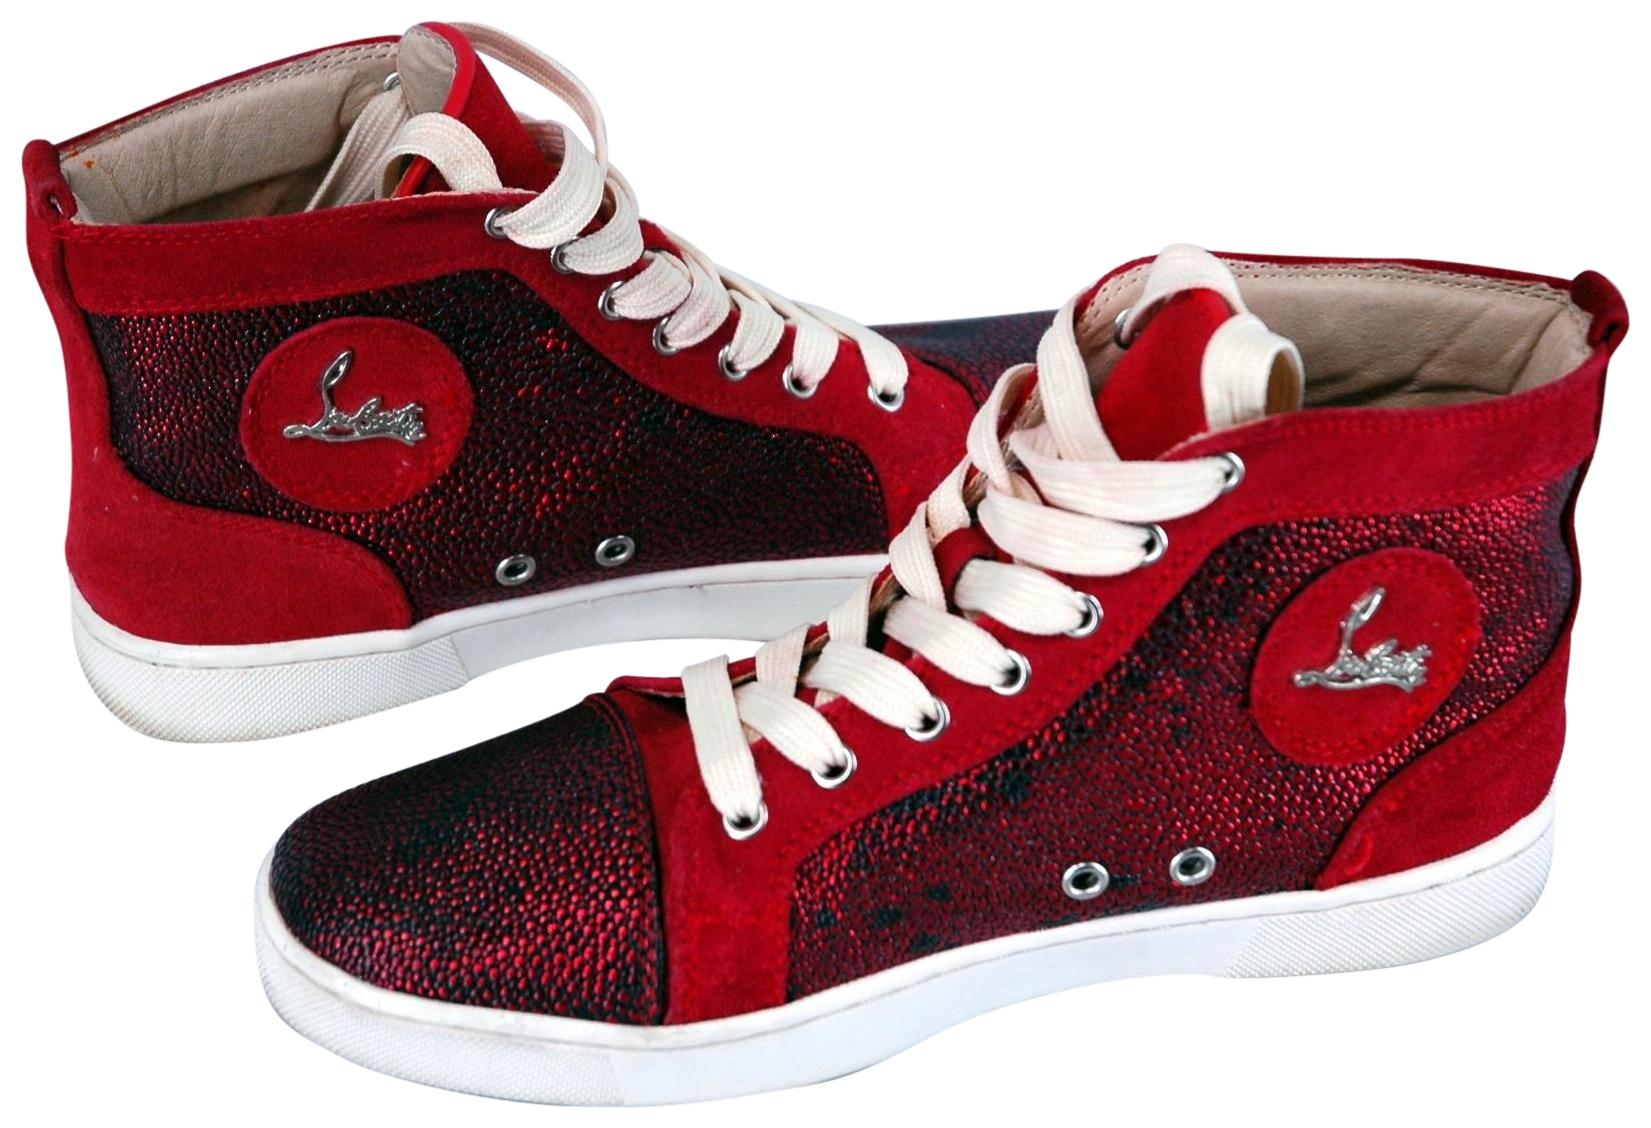 a34aa19e01c6 ... best price christian louboutin sneaker bip bip orlato high sneaker red  athletic a1af5 cccb0 clearance christian louboutin sneakers shoes men ...